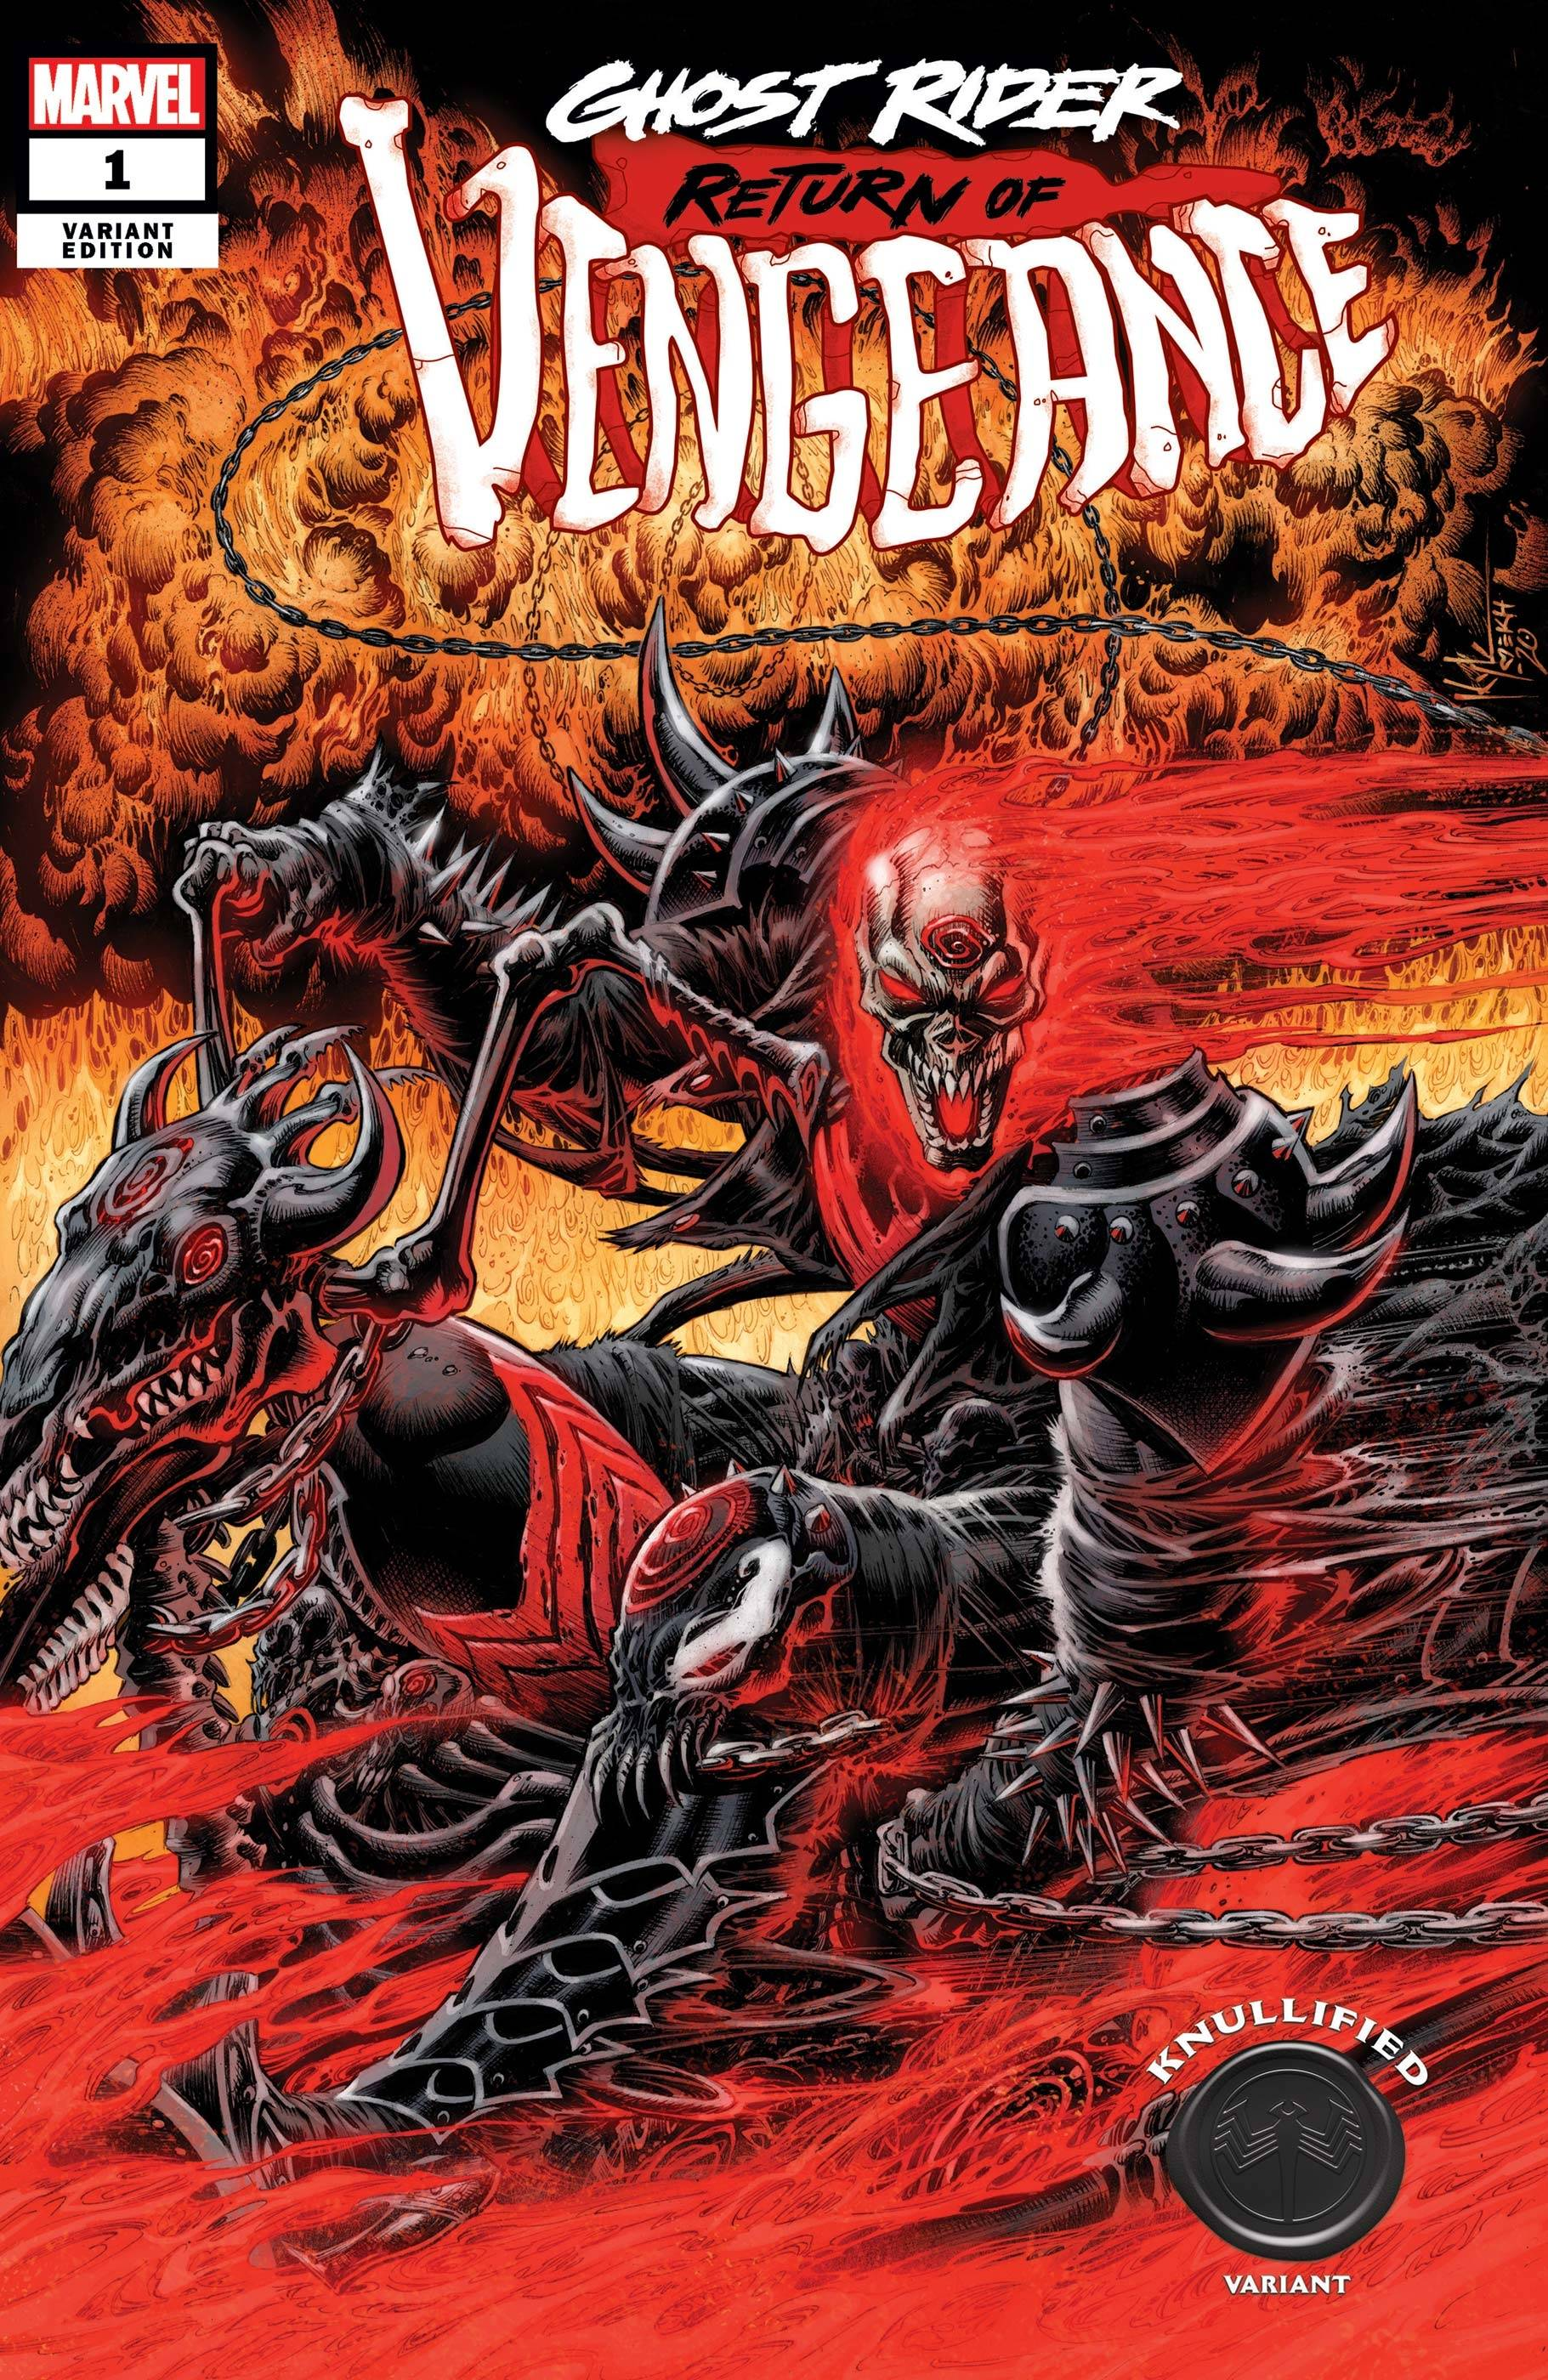 GHOST RIDER RETURN OF VENGEANCE #1 HOTZ KNULLIFIED VAR